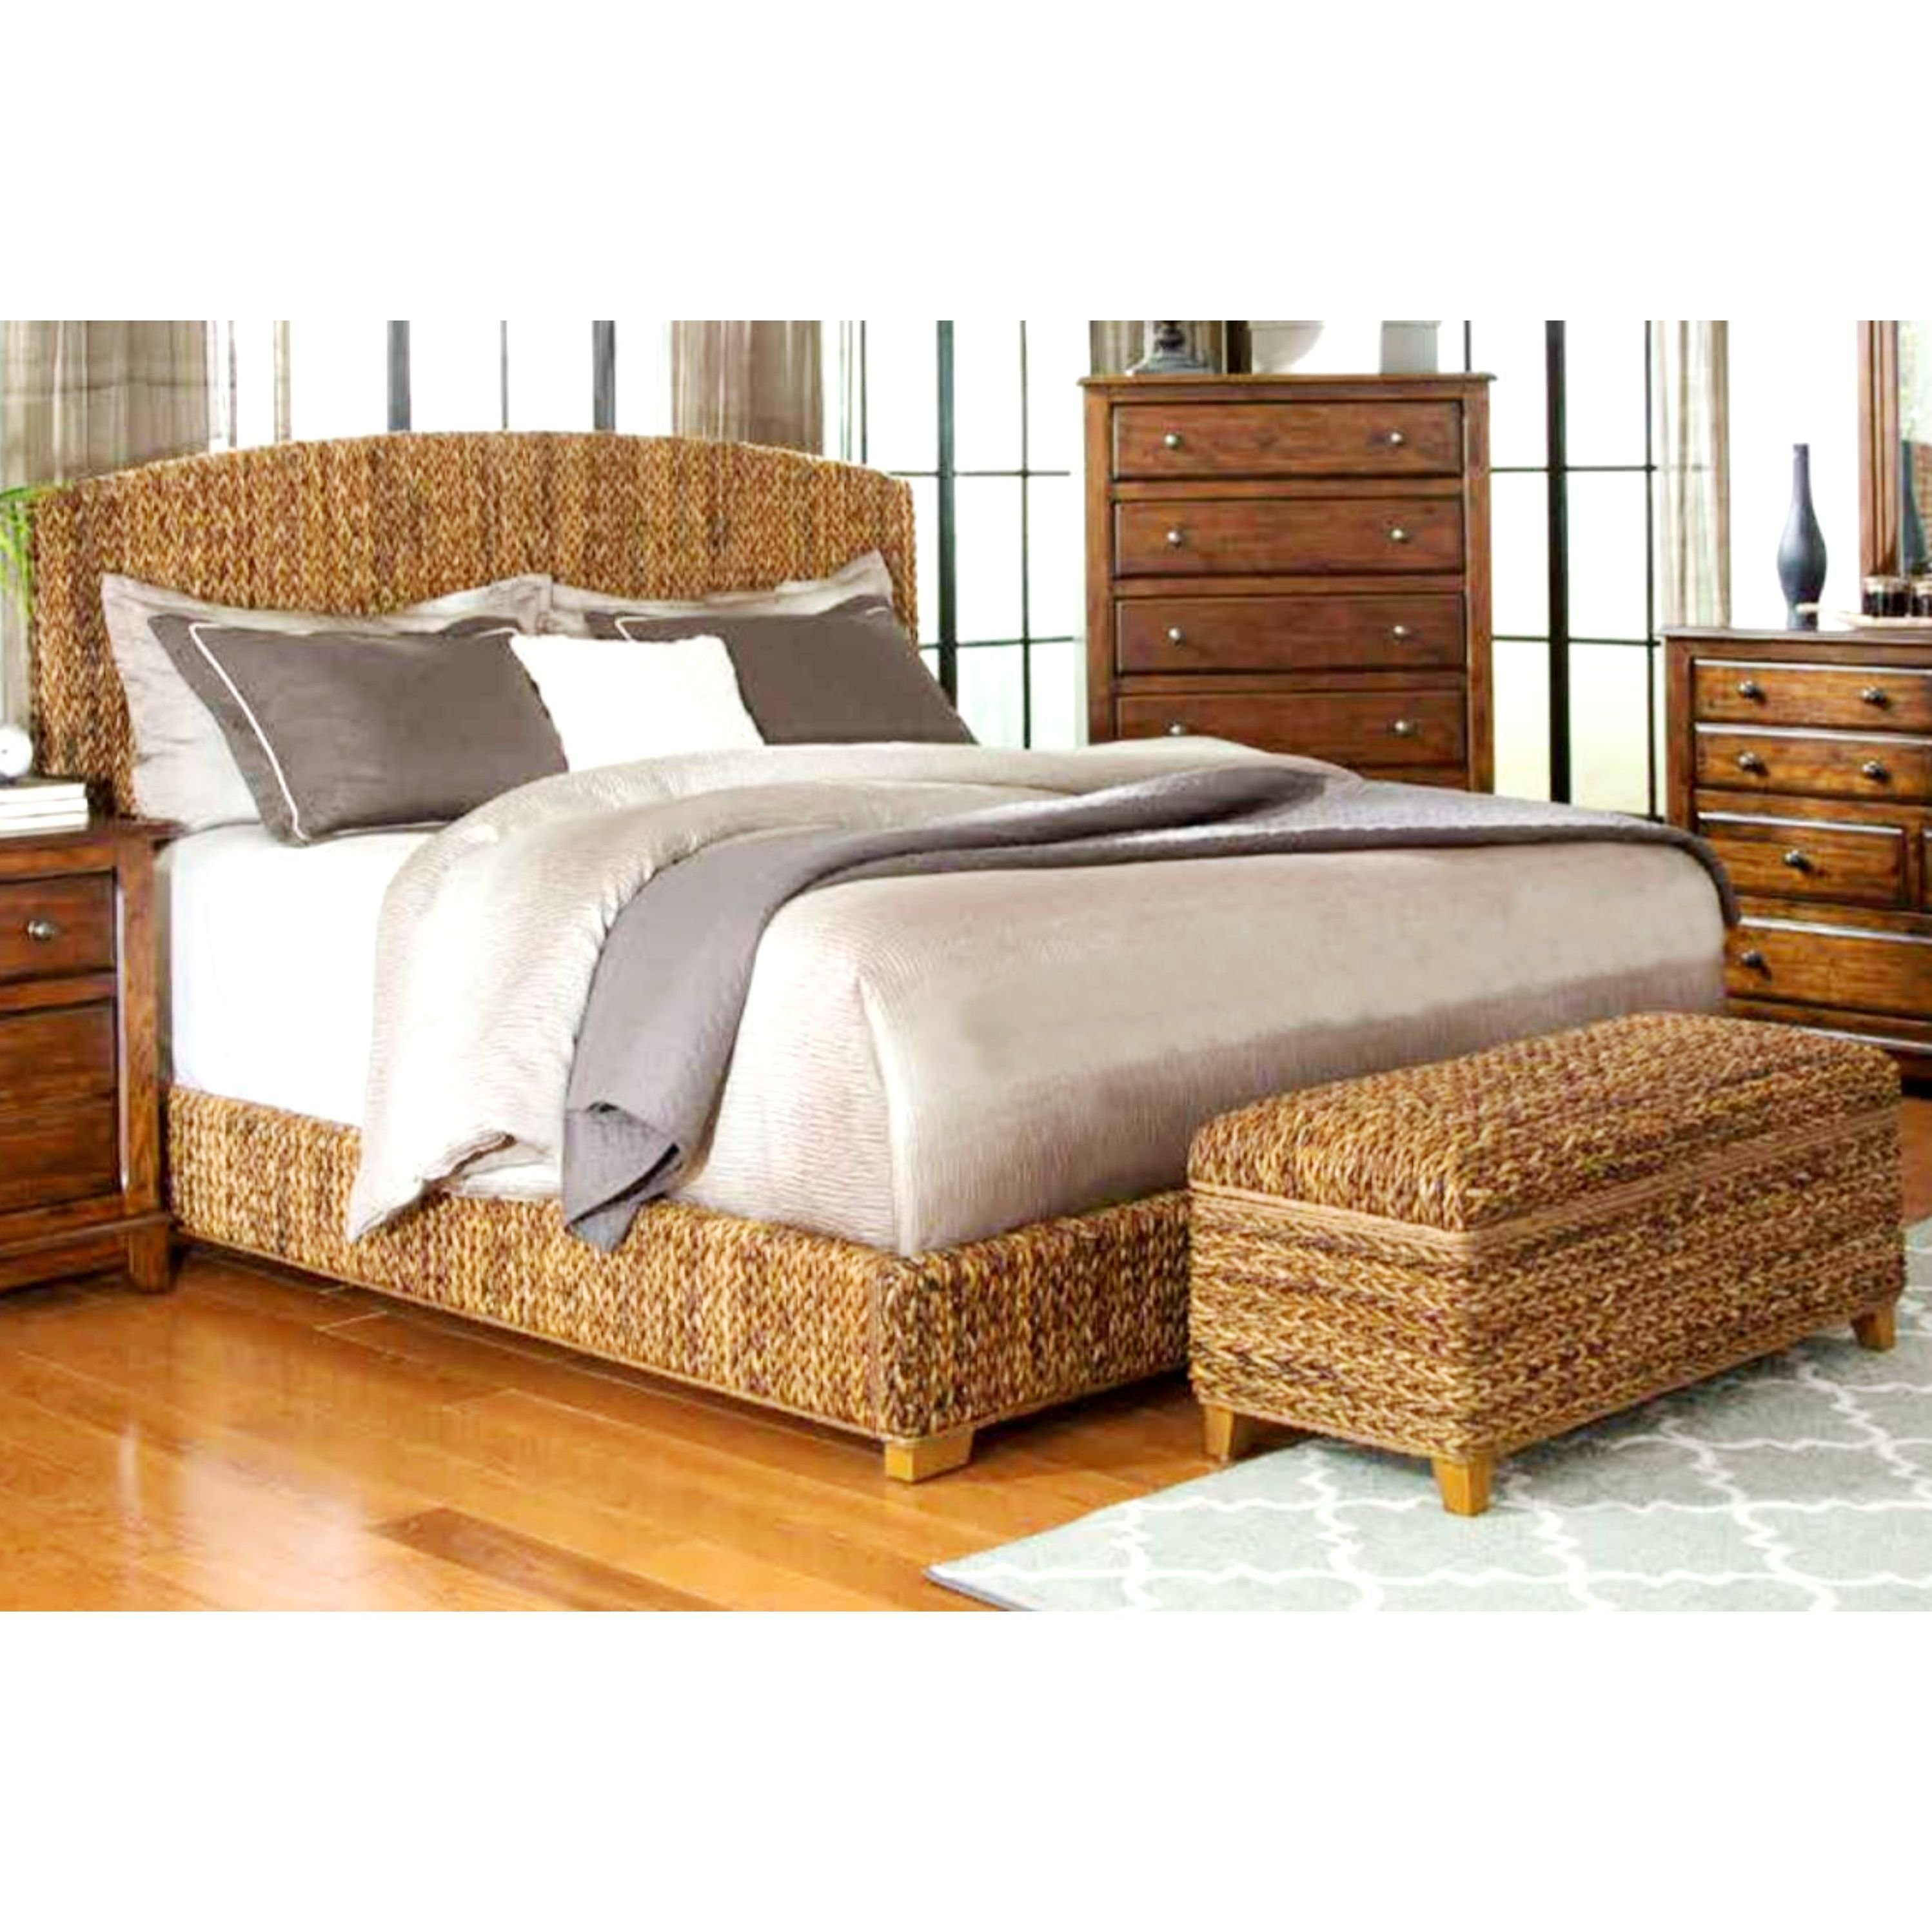 Best Modern Country Style Hand Woven Banana Leaf Bed With With Pictures